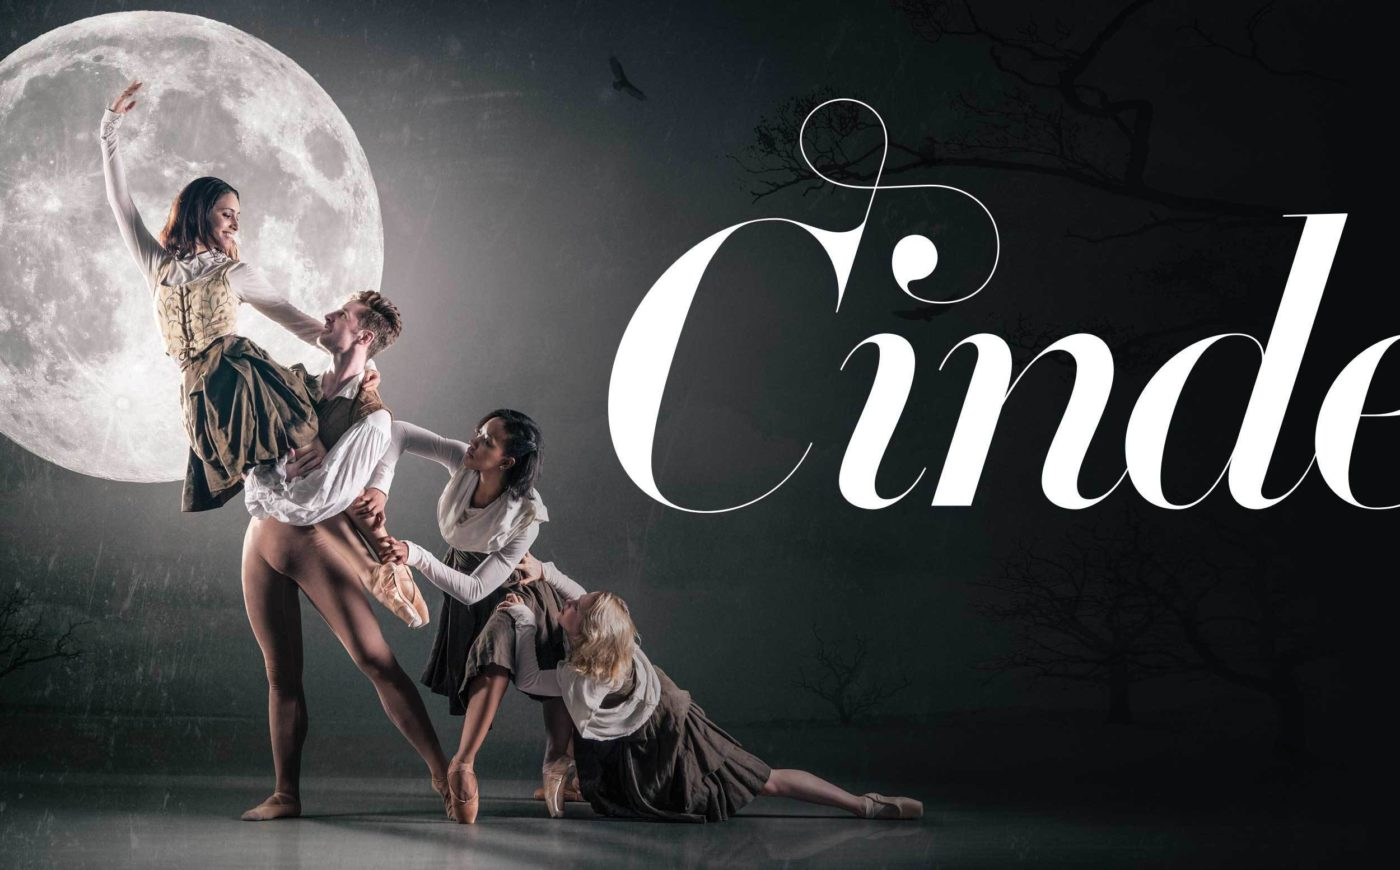 Image of the show branding for Cinderella